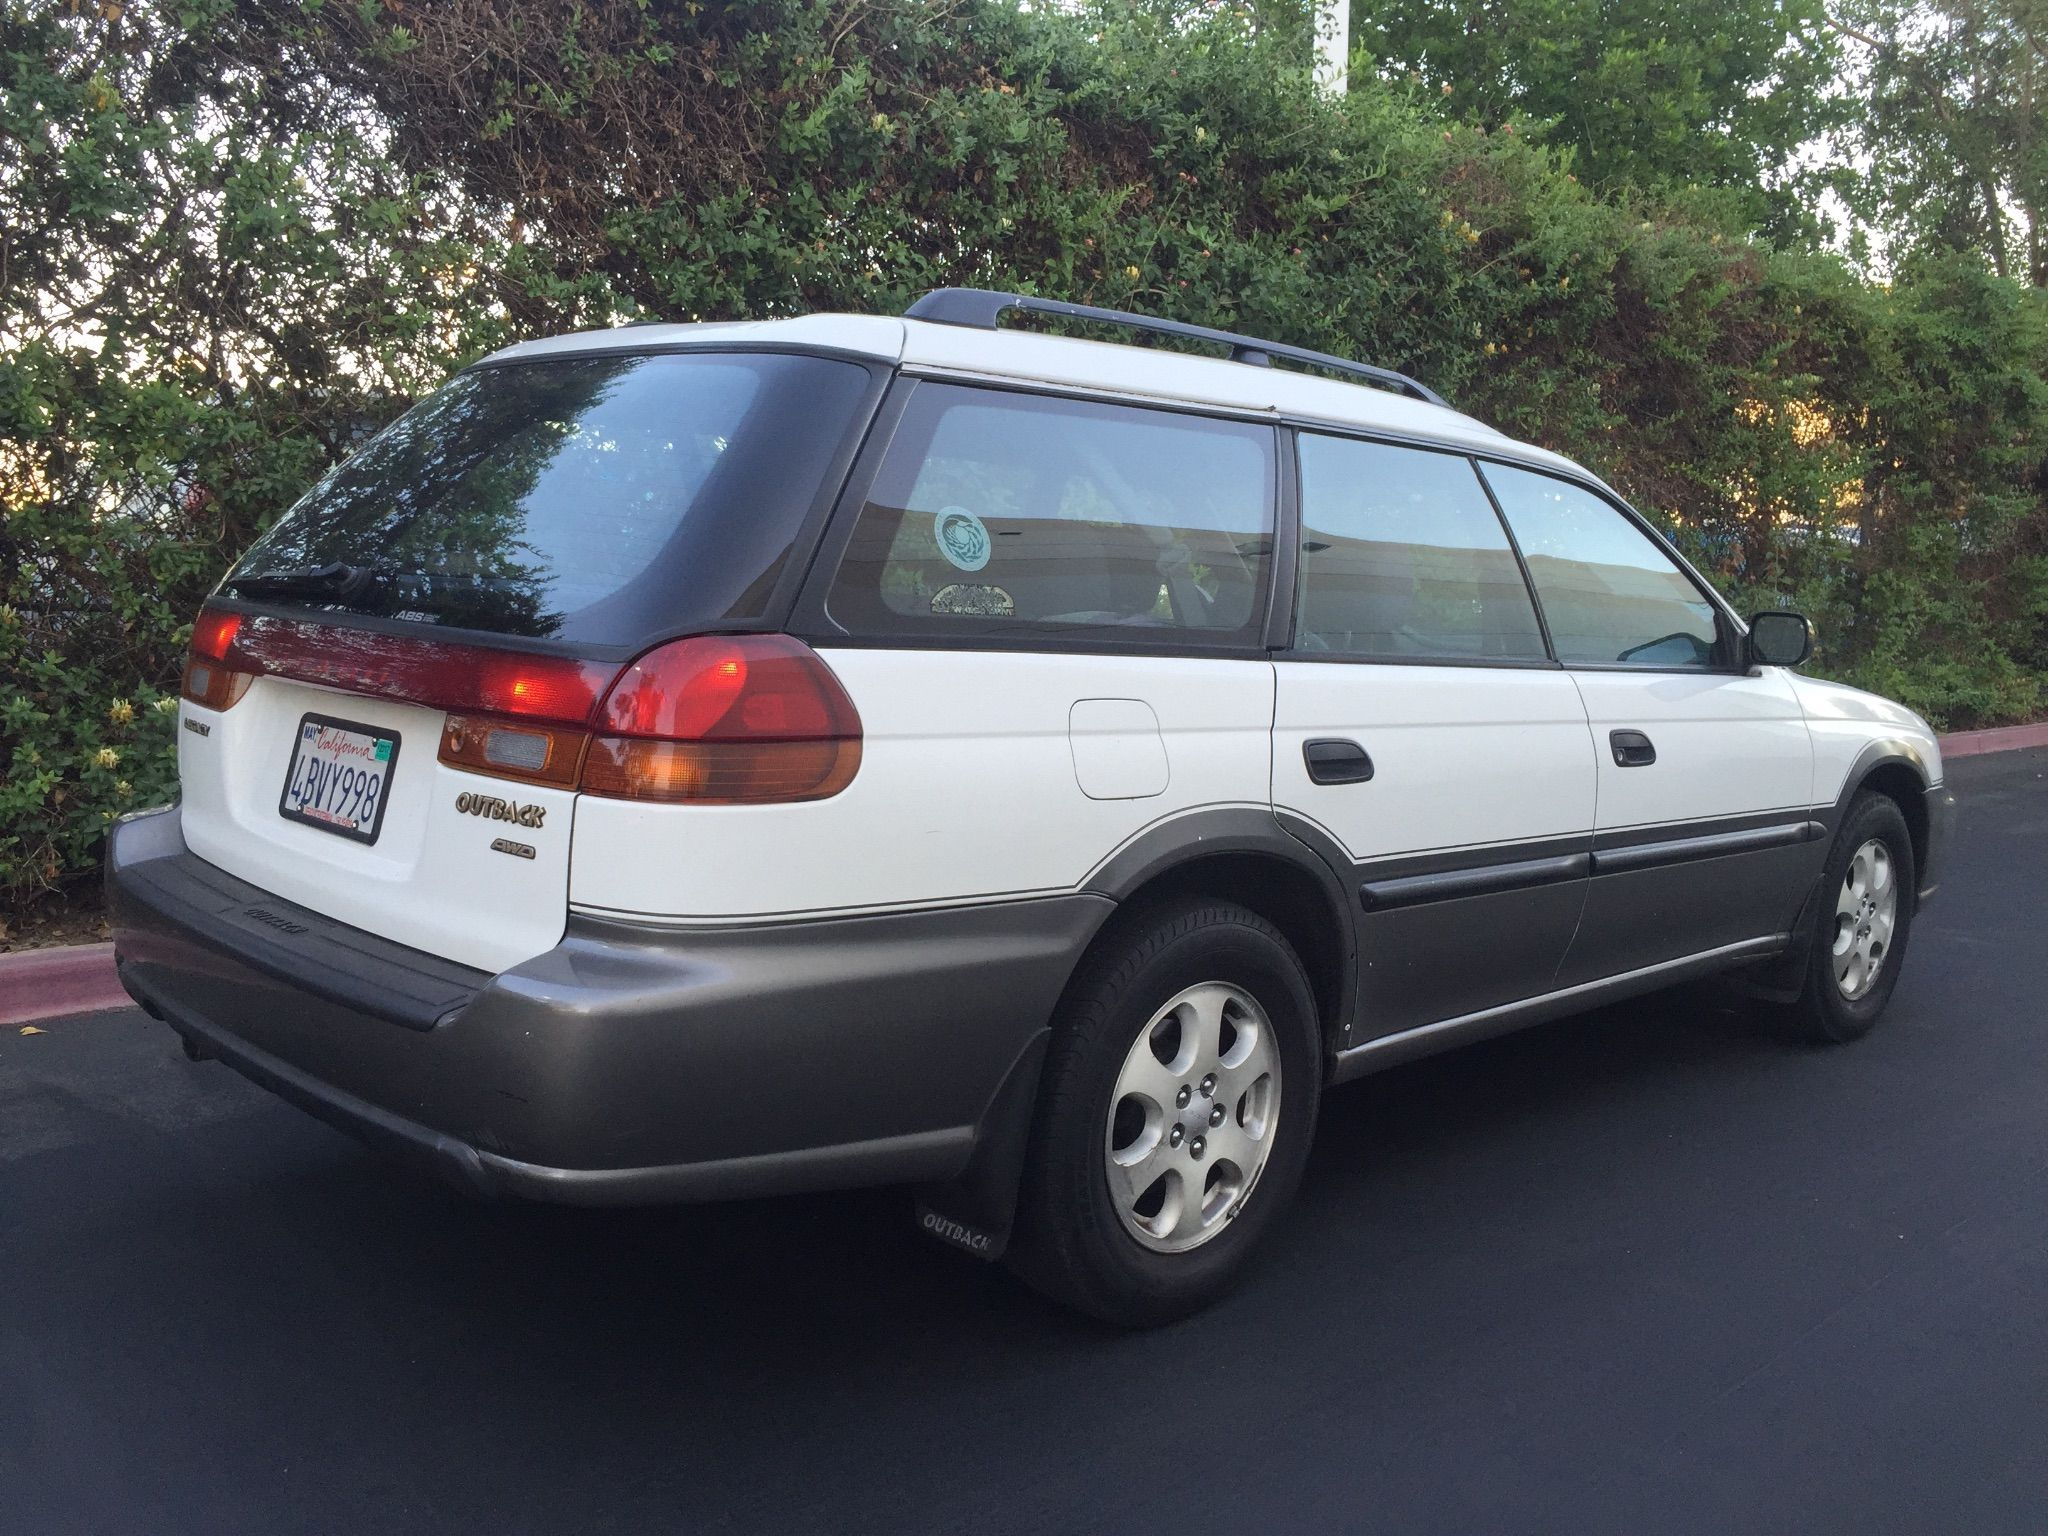 Used 1998 Subaru Legacy Wagon Outback At City Cars Warehouse Inc